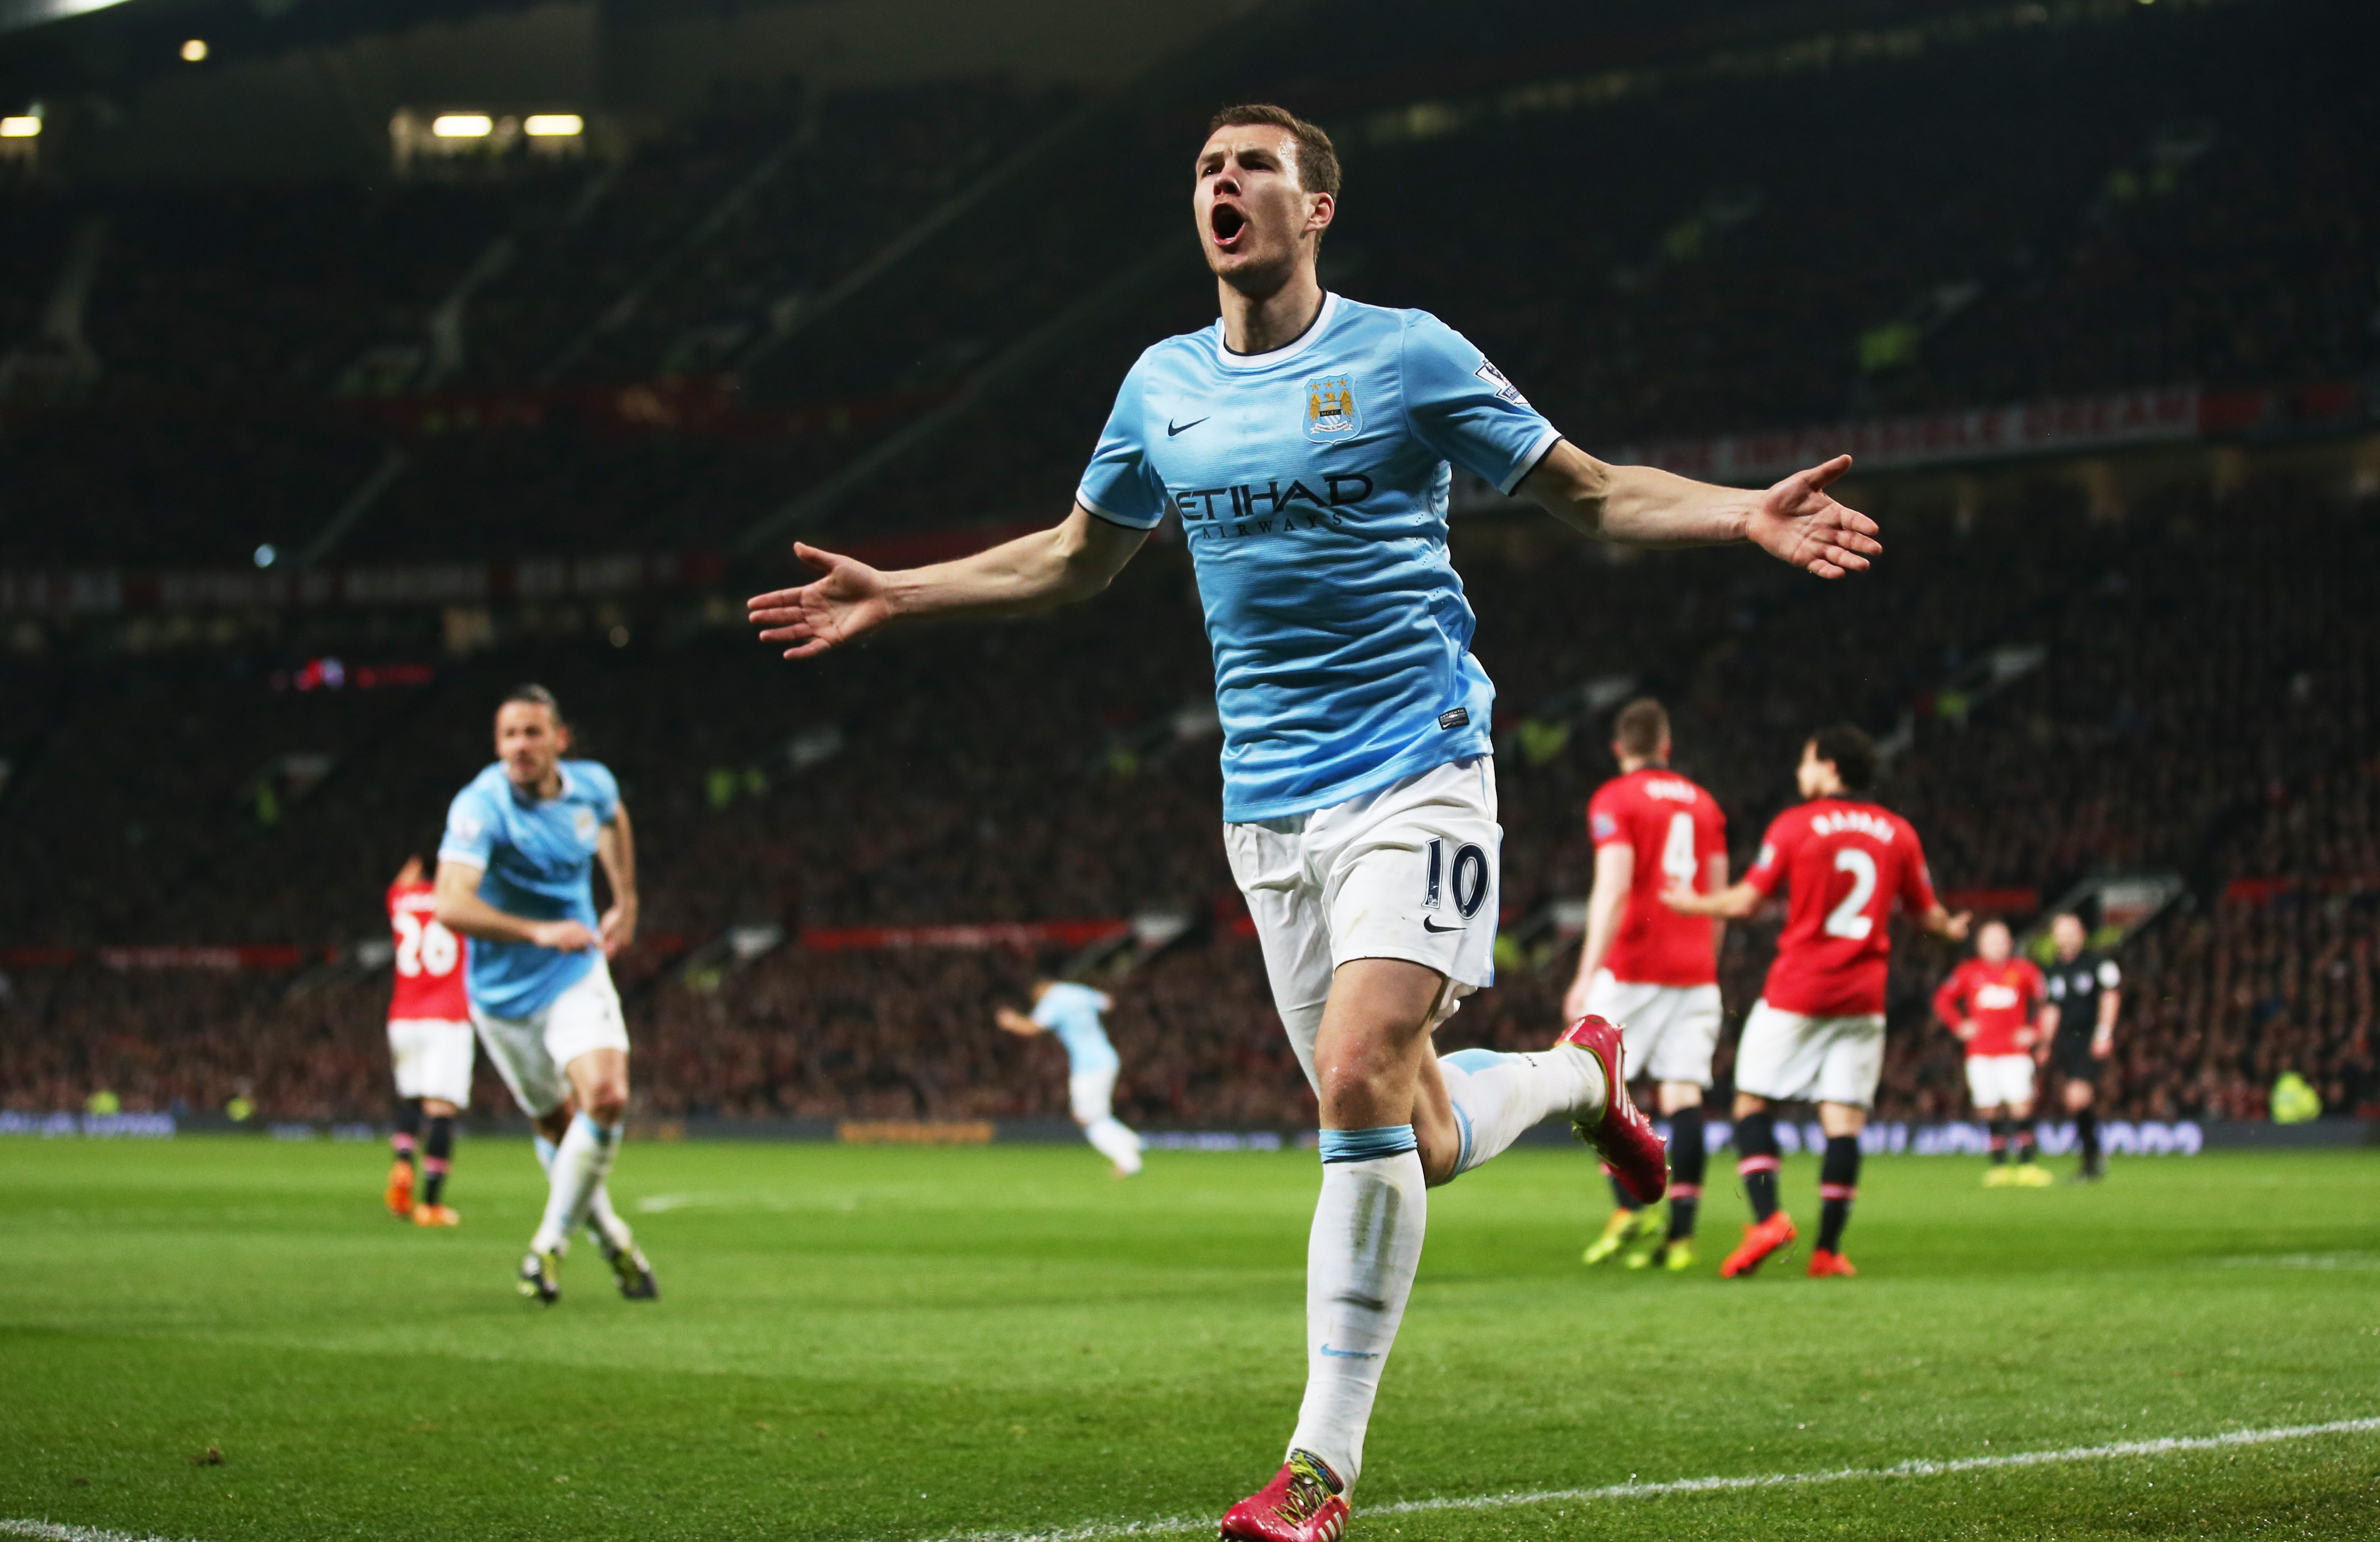 Manchester United considering move for former rival player Edin Dzeko